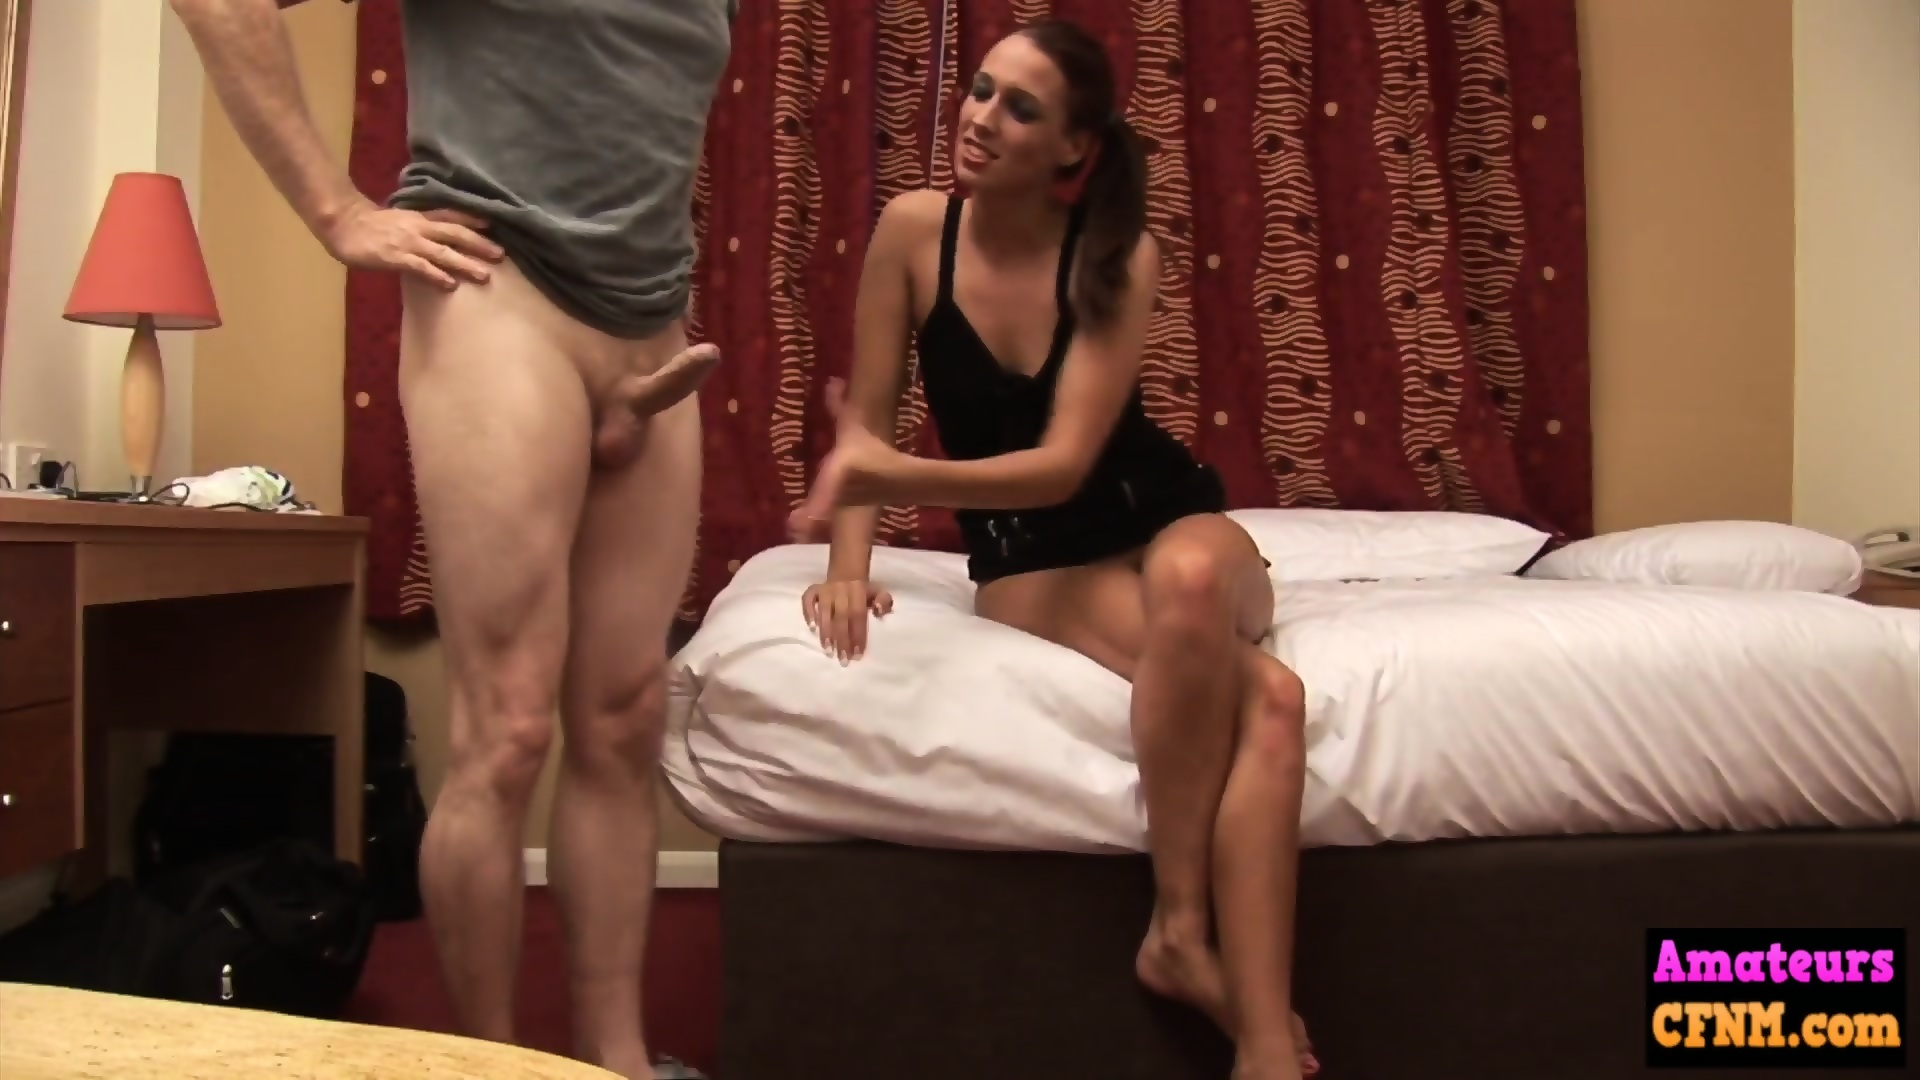 College roommates shave their cocks